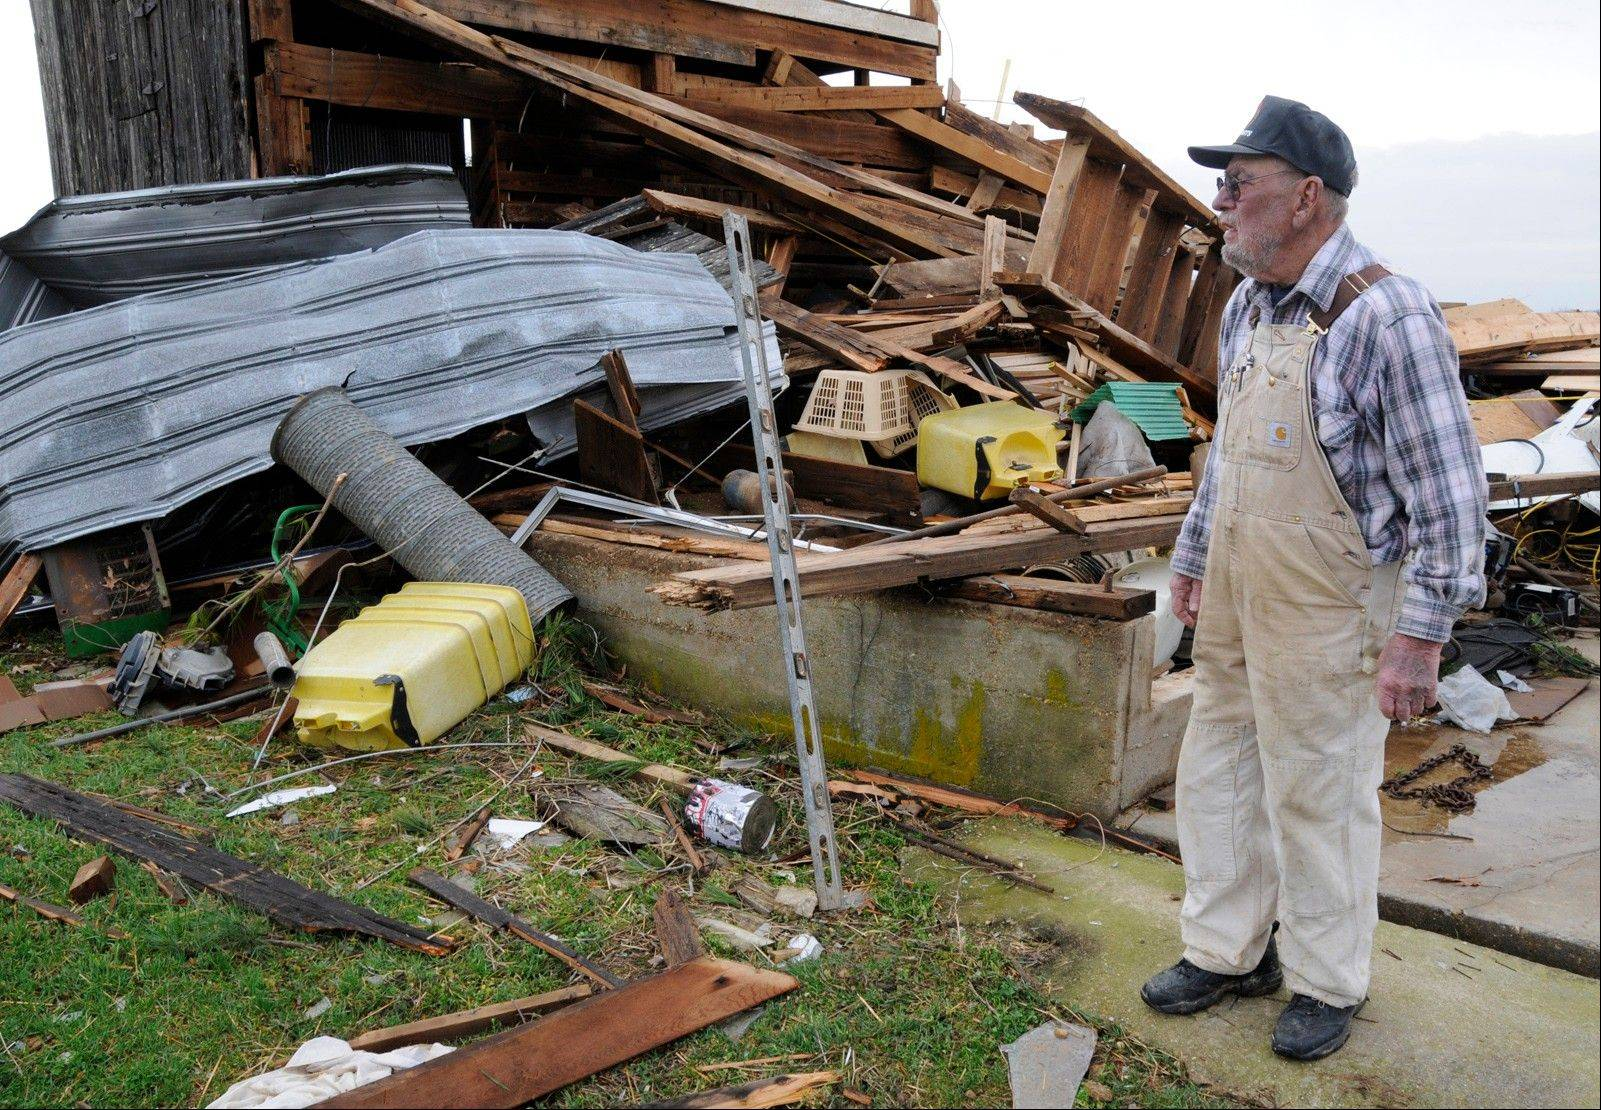 D.L. Douglas, 80, surveys the damage to a barn near his house northeast of Puxico, Mo., after a storm ripped through the area around 4 a.m. Wednesday, Feb. 29, 2012. Douglas and his wife survived without injuries, but a resident of a nearby mobile home died from injuries he suffered when the trailer was lifted and moved about 80 yards from its original location.